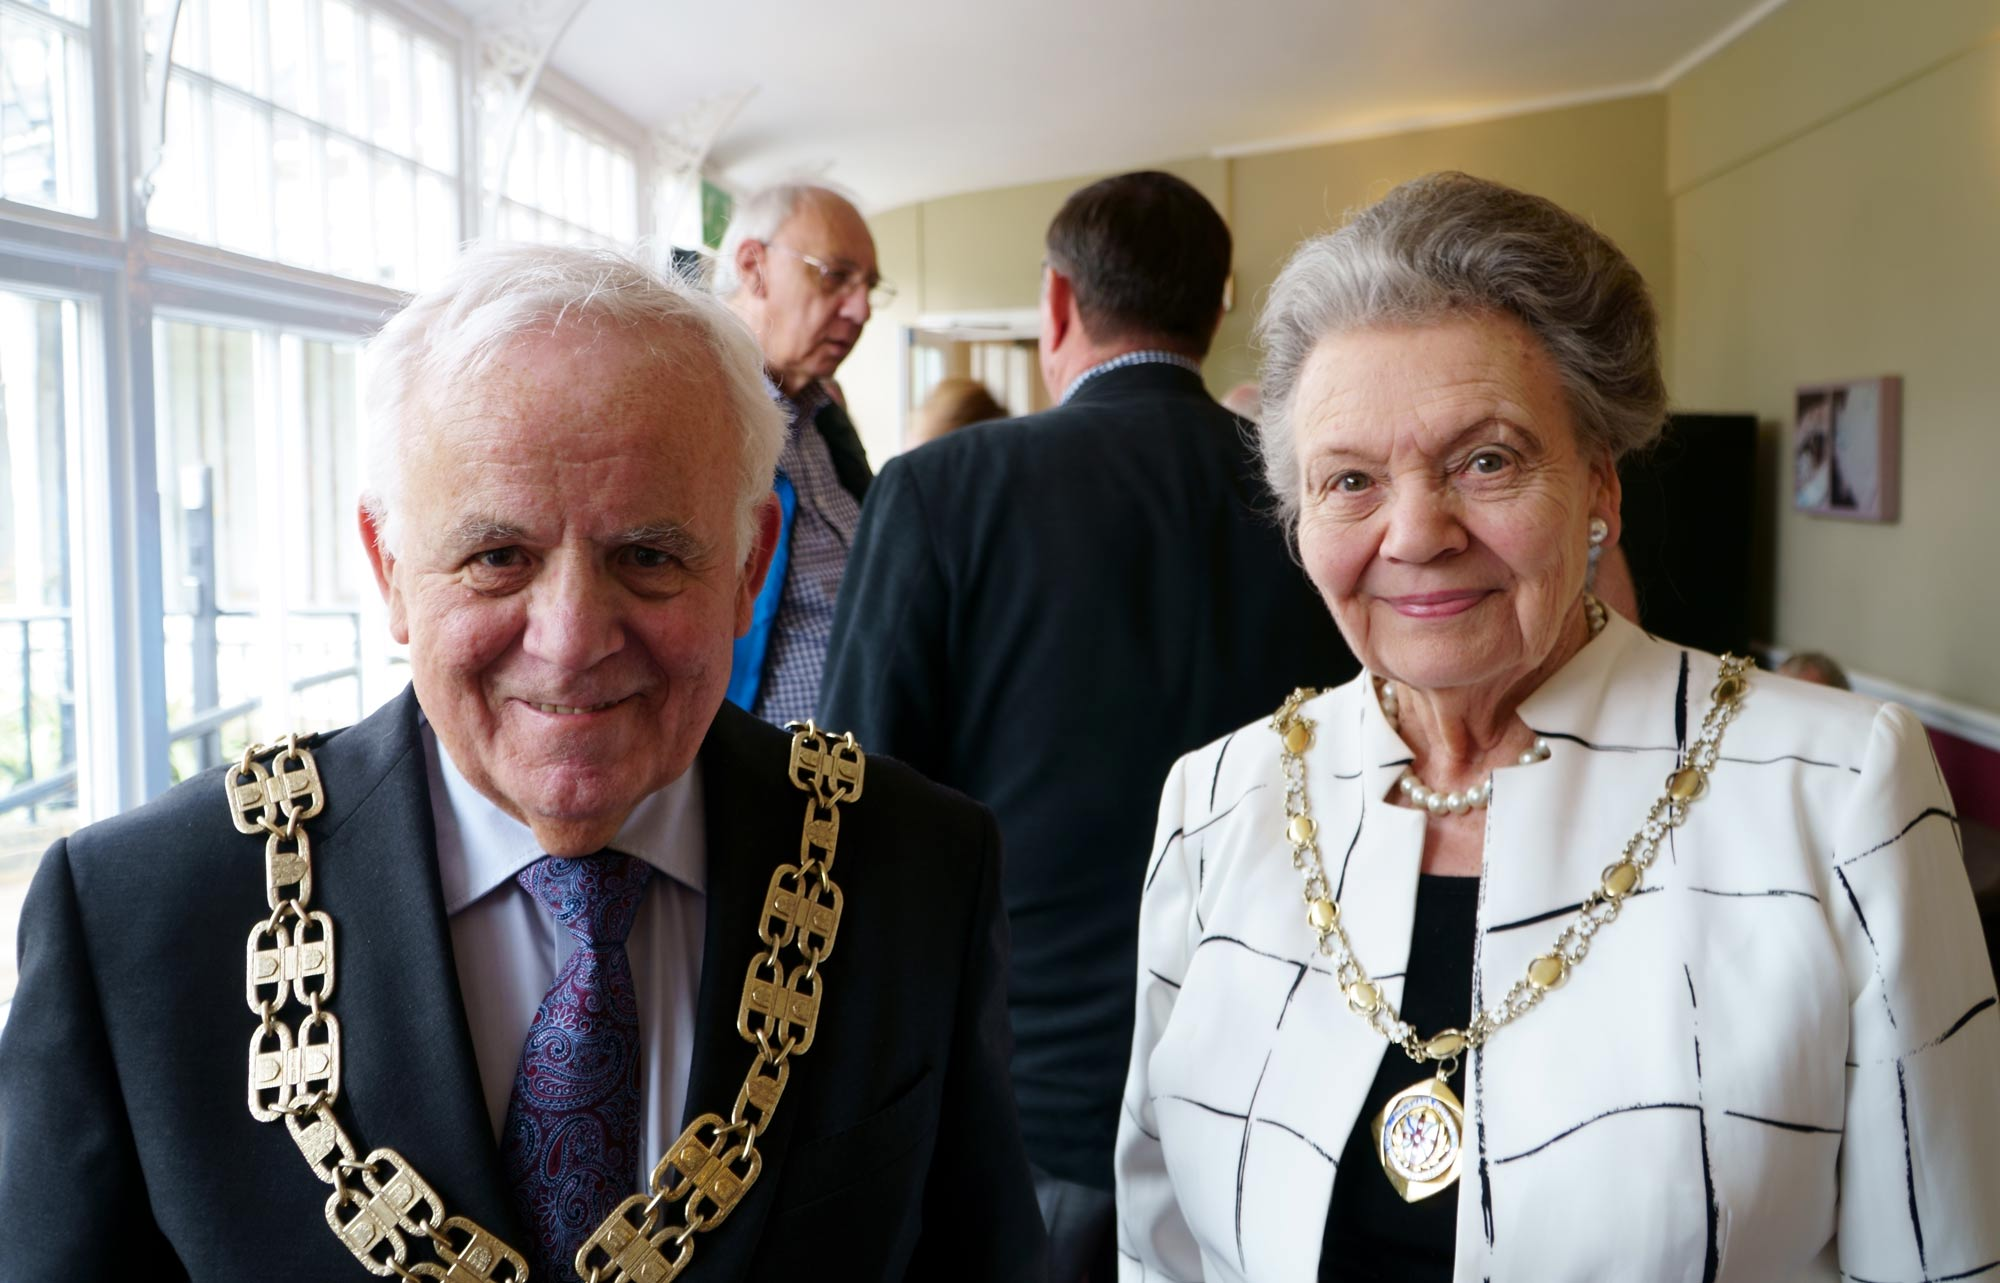 Chairman of the North Yorkshire County Council, Jim Clark with consort Mrs Shirley Fawcett